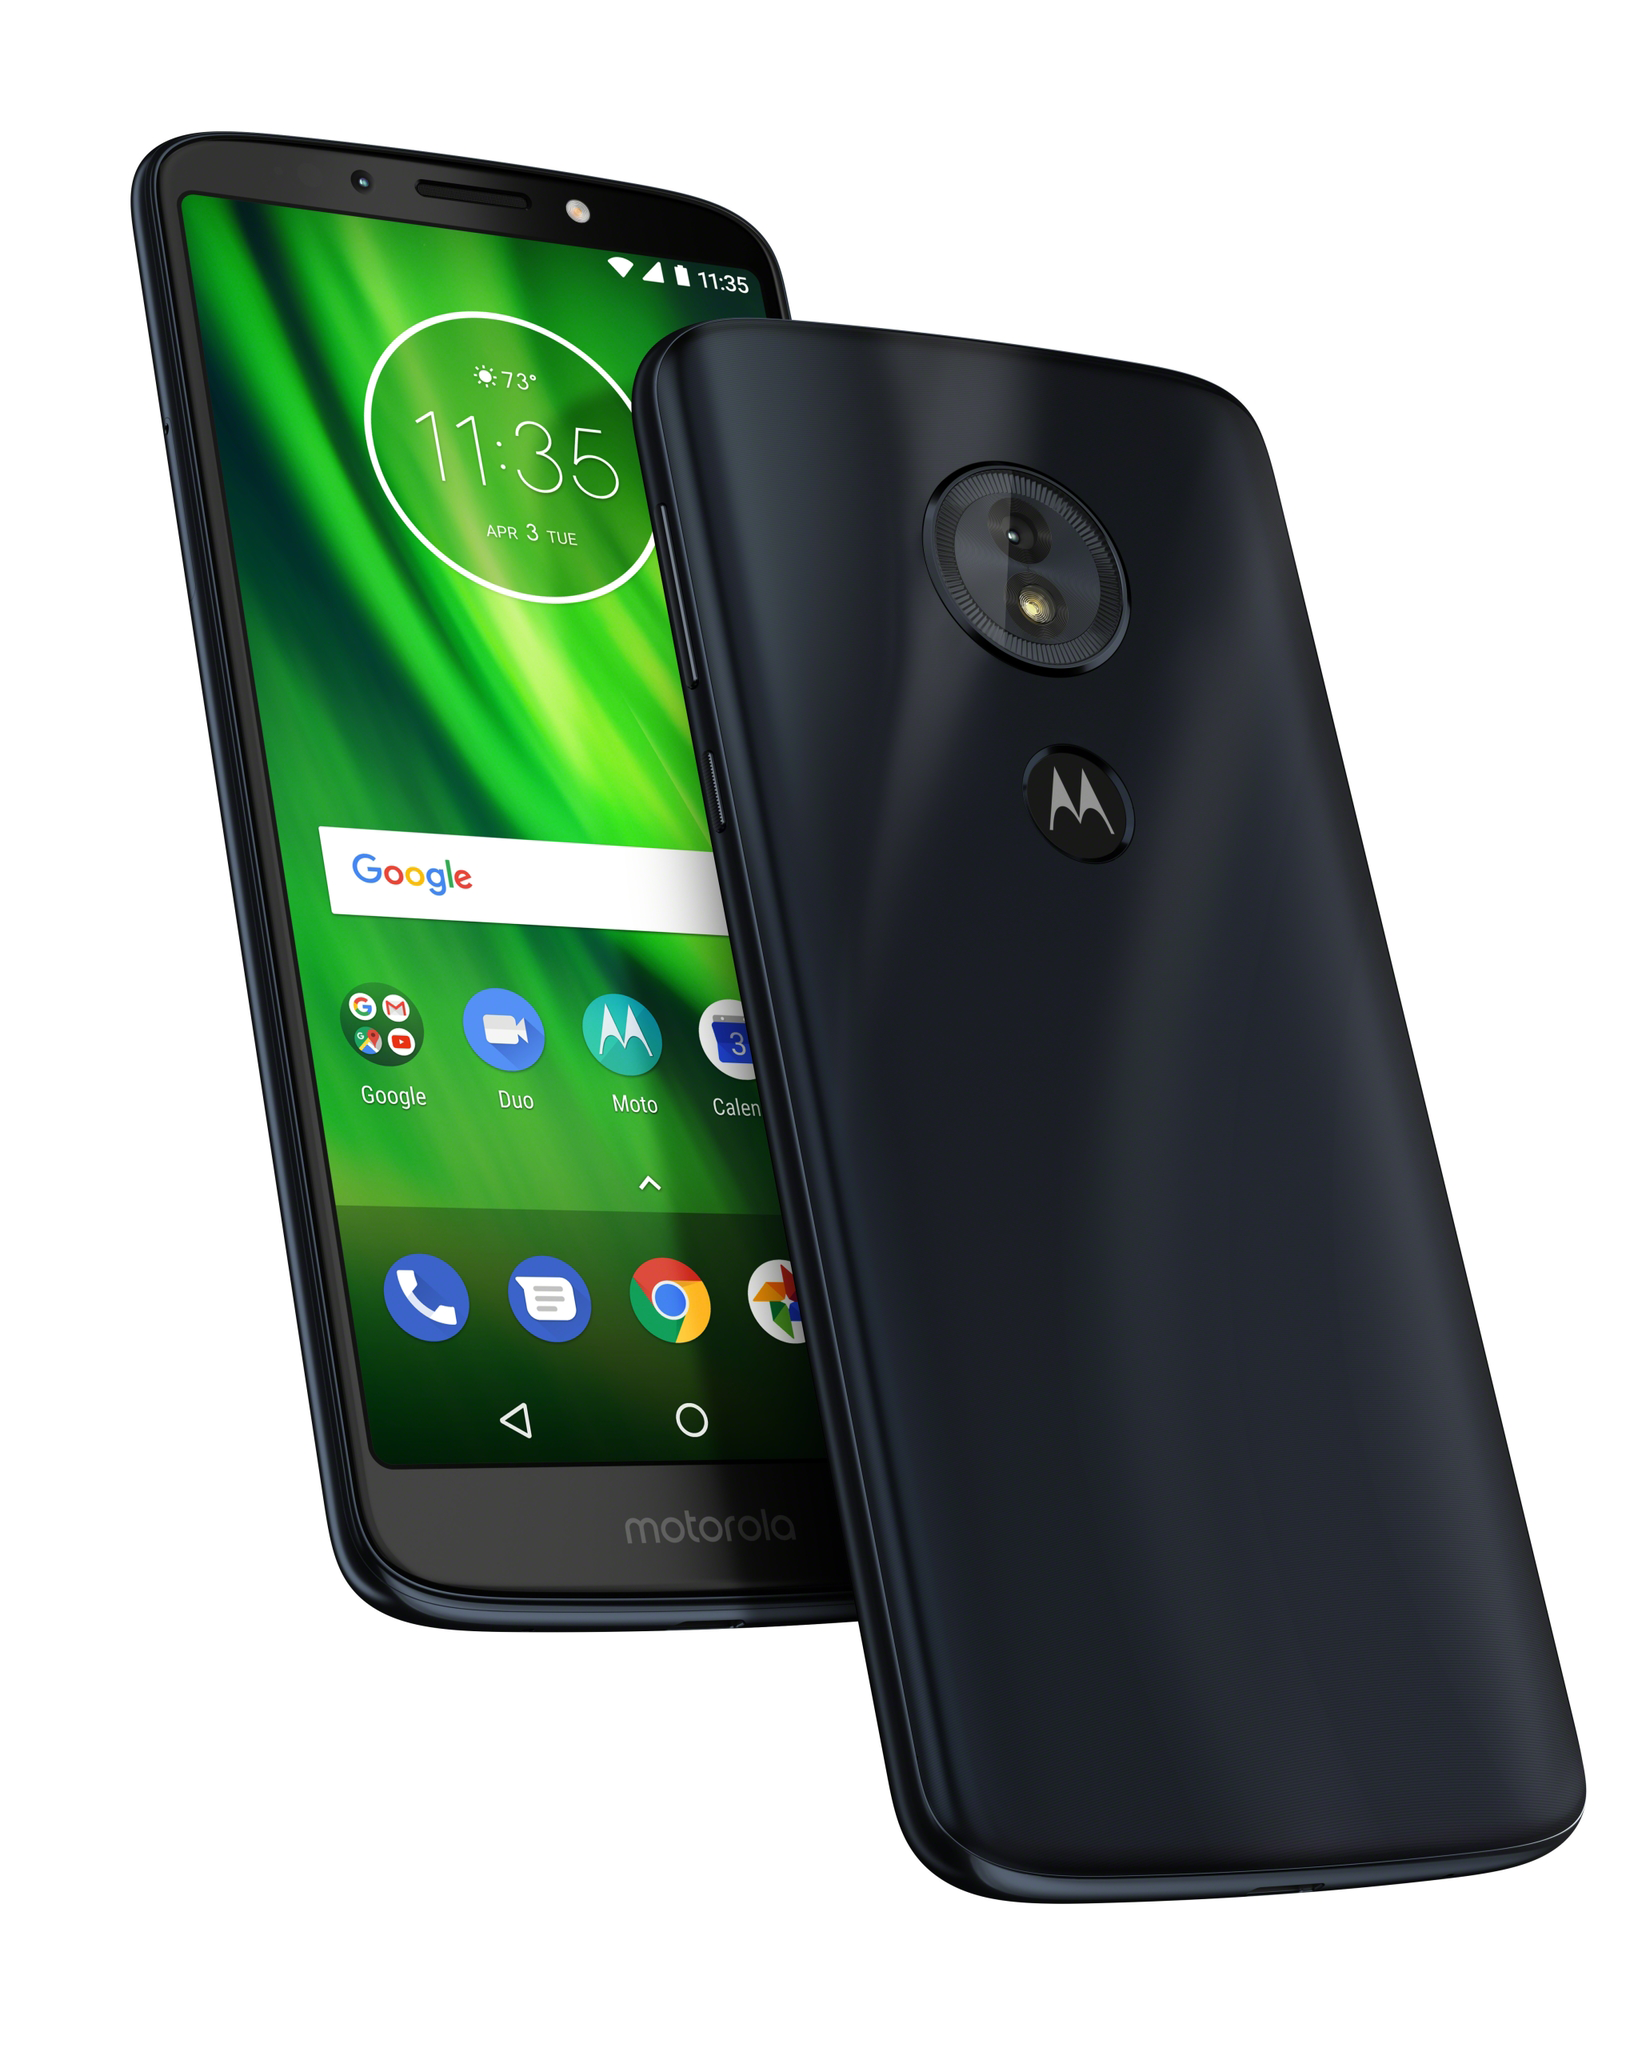 Amazon Adds Moto Z3 Play, Moto G6 Play to Prime Exclusive Lineup